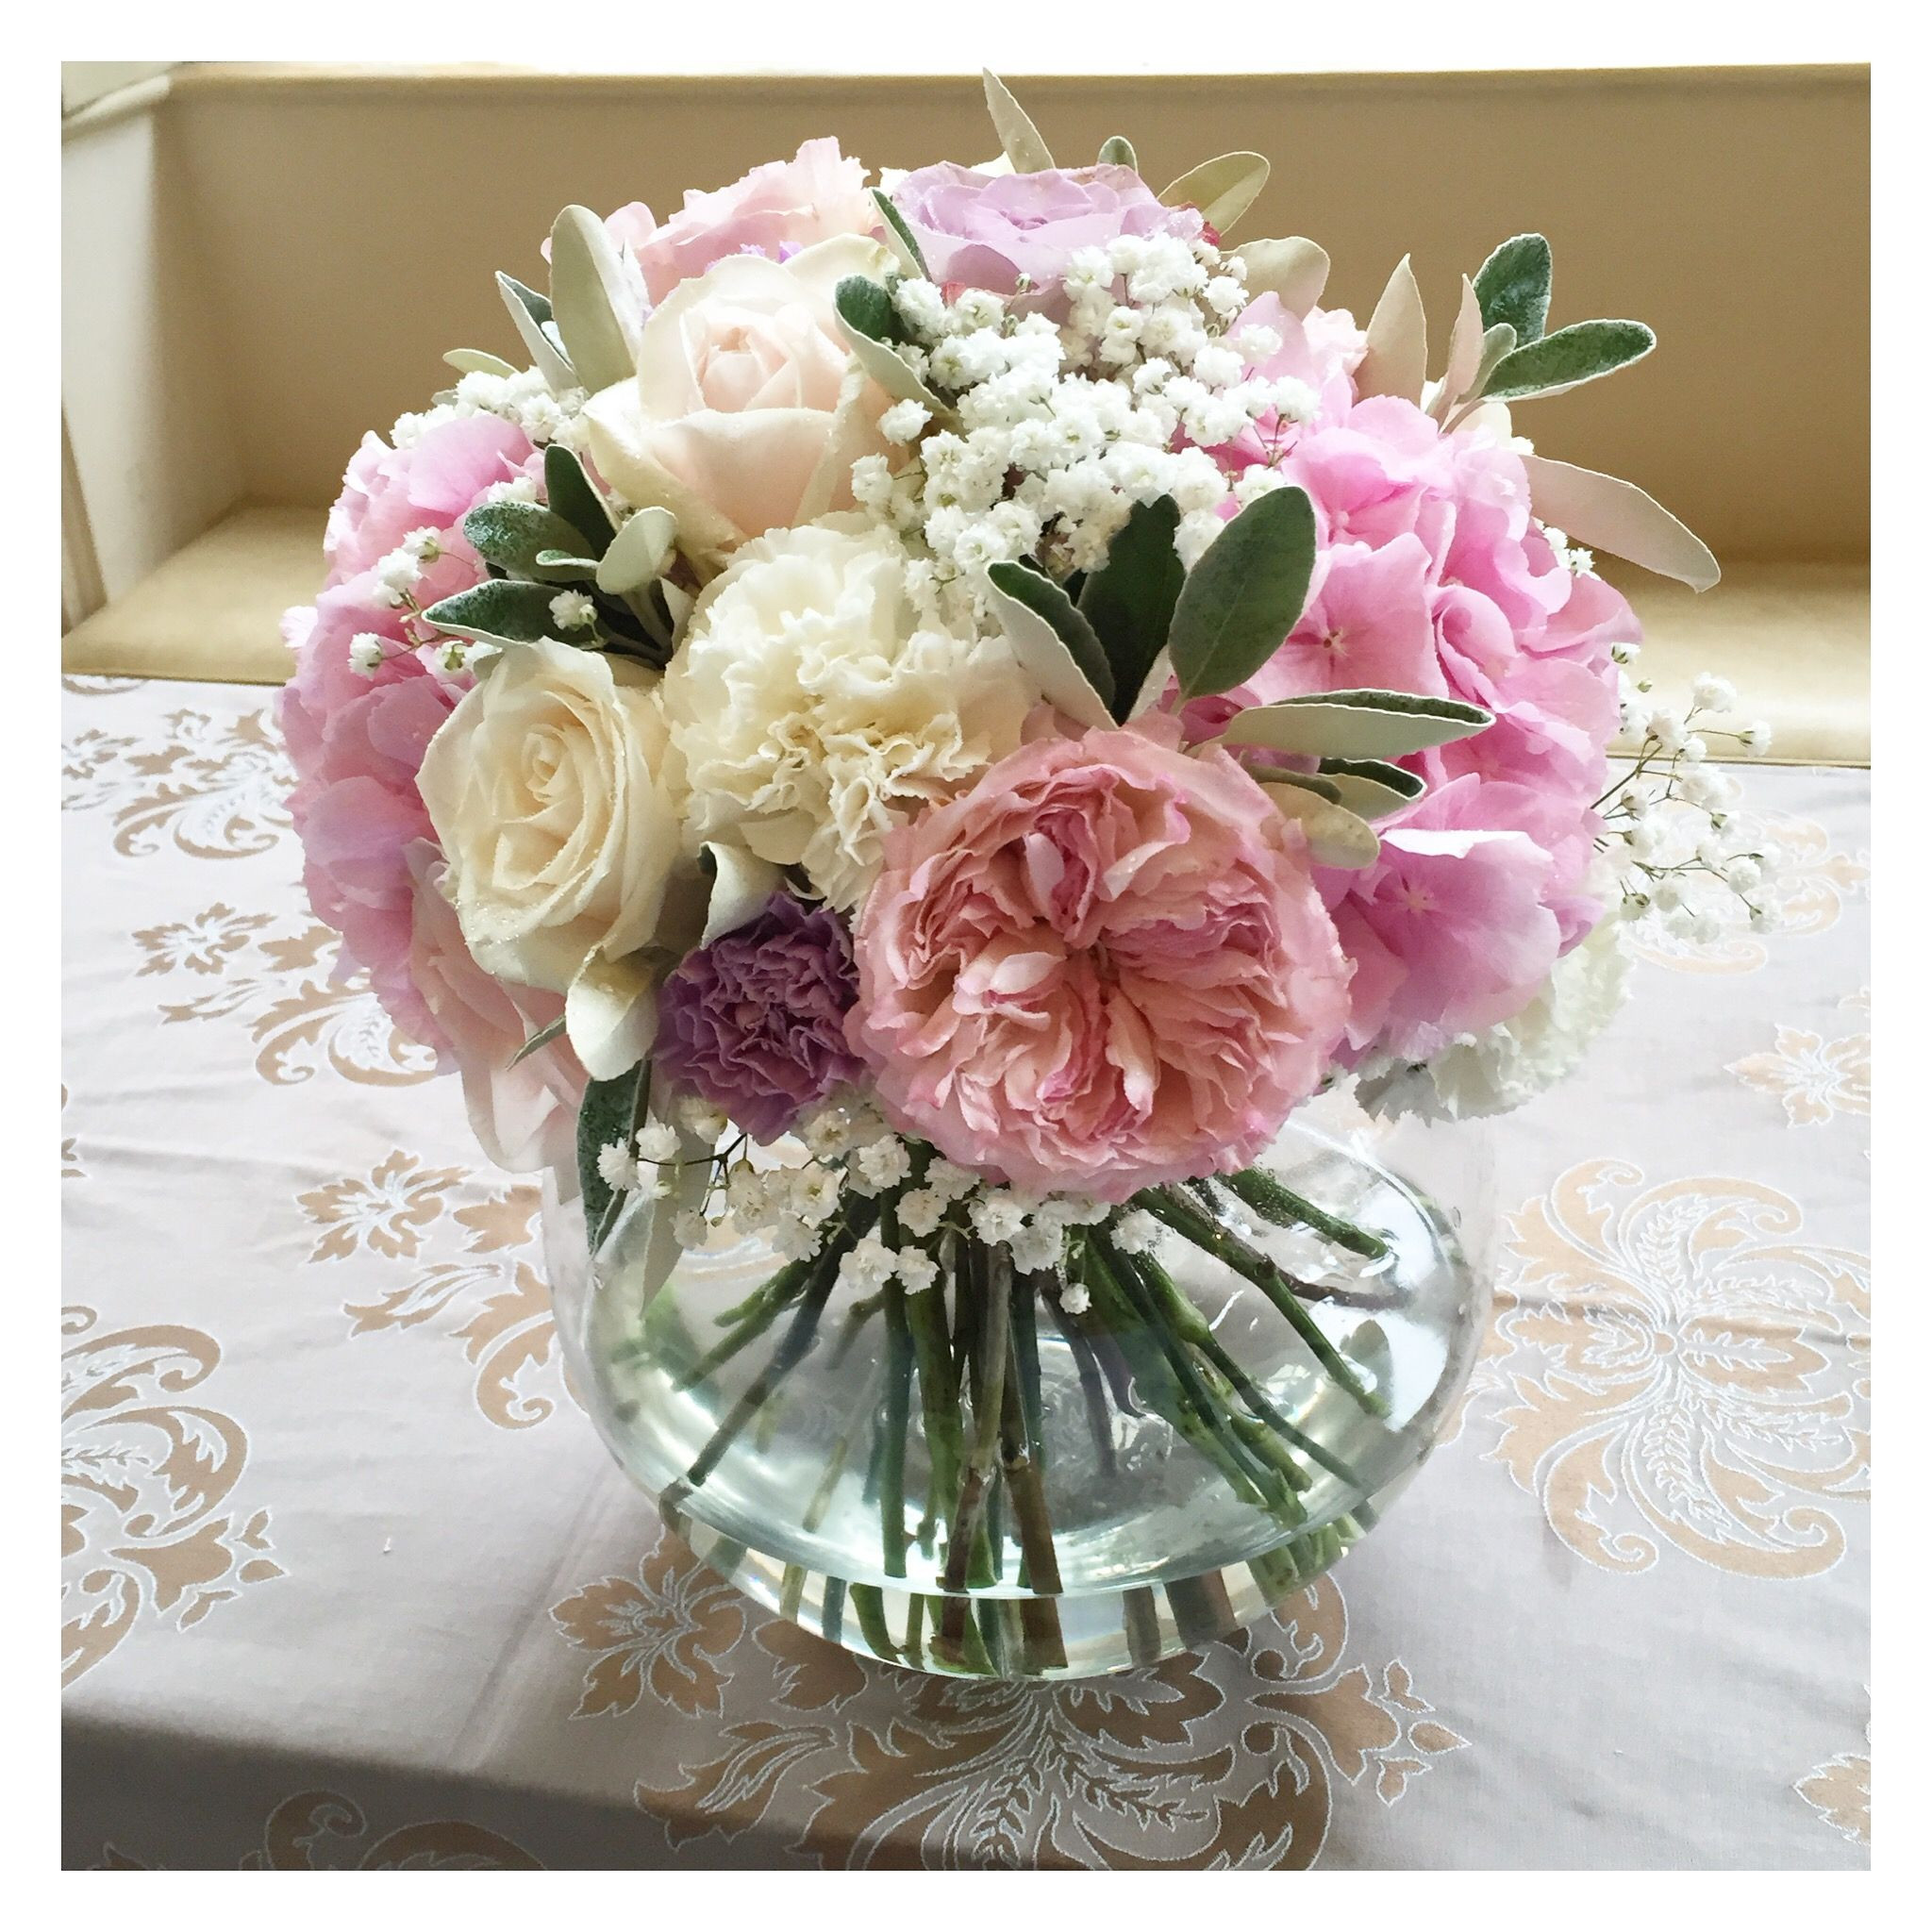 Same Day Flower Delivery Baton Rouge Fresh Pink Rose Hydrangea and Peony Fish Bowl Wedding Centrepiece Surrey